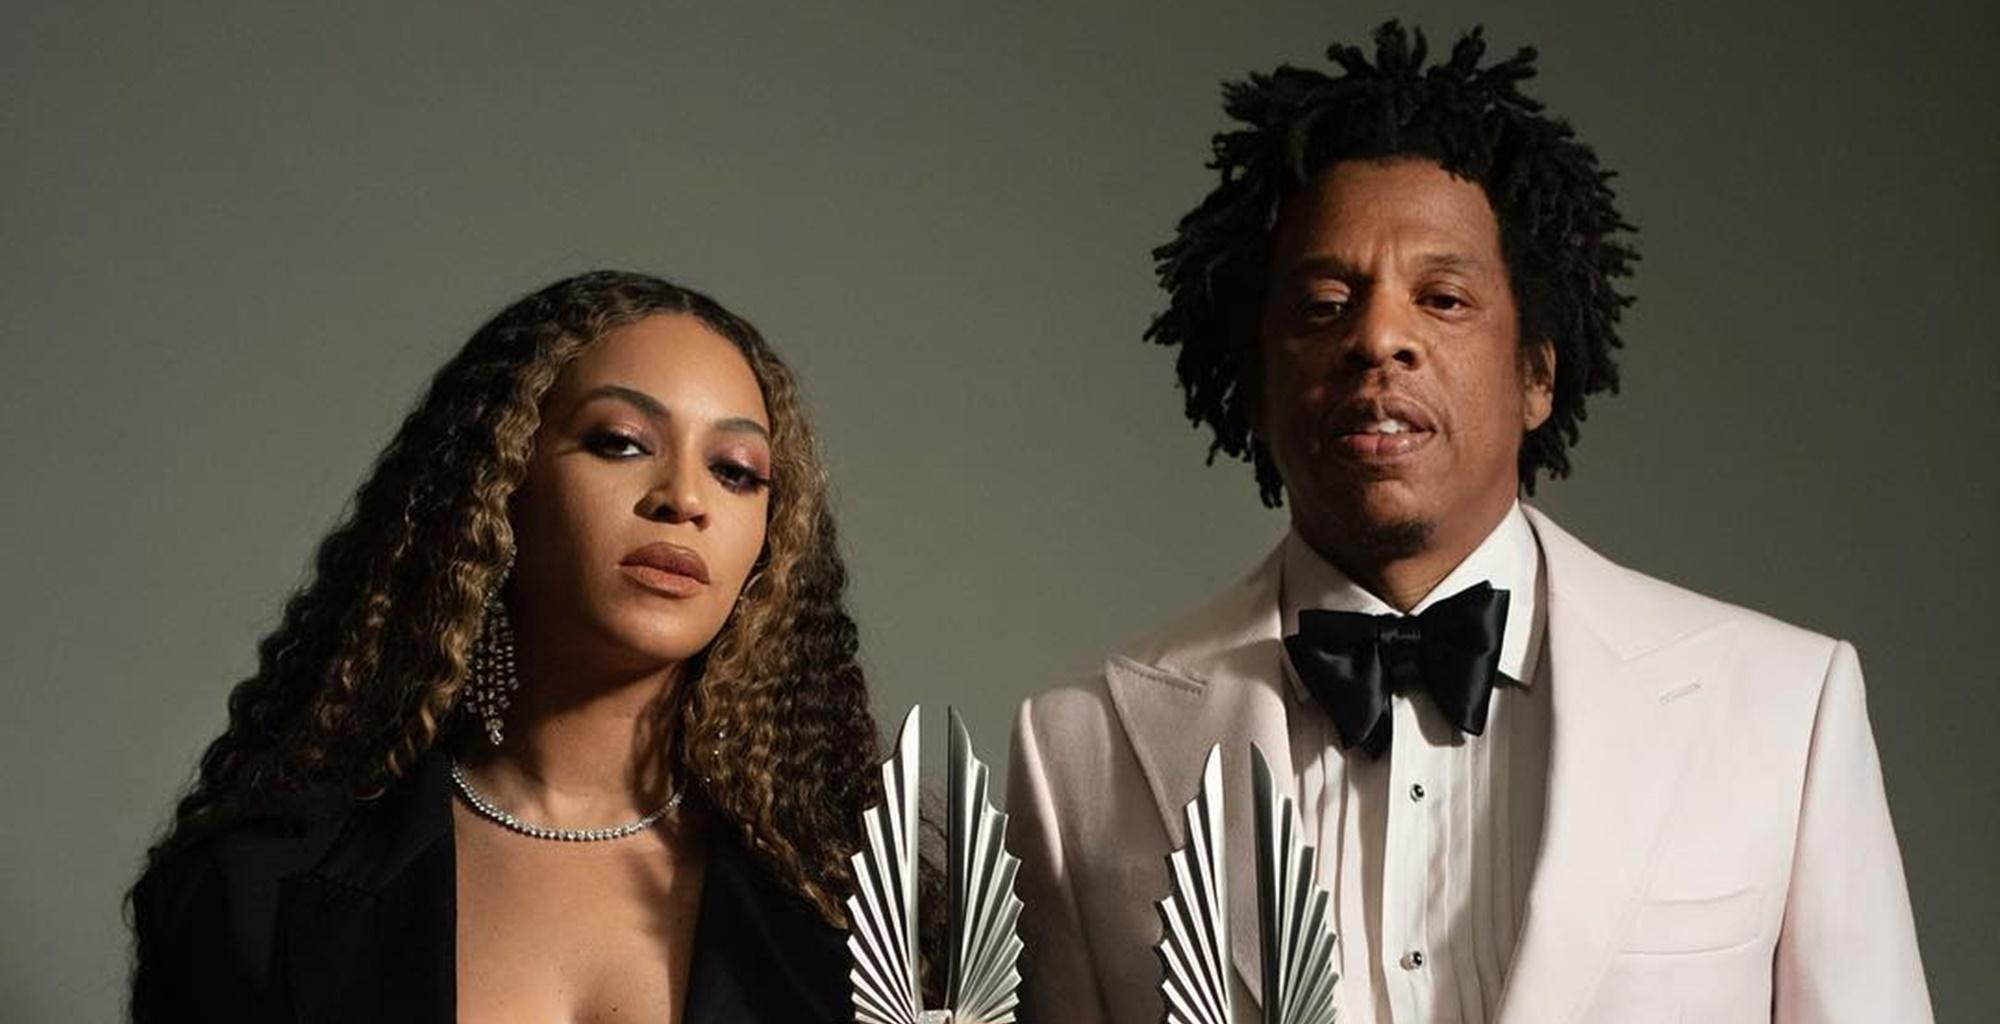 Beyoncé Looks Seriously Pregnant In New Photos With Jay-Z -- Is Baby Number 4 Coming?